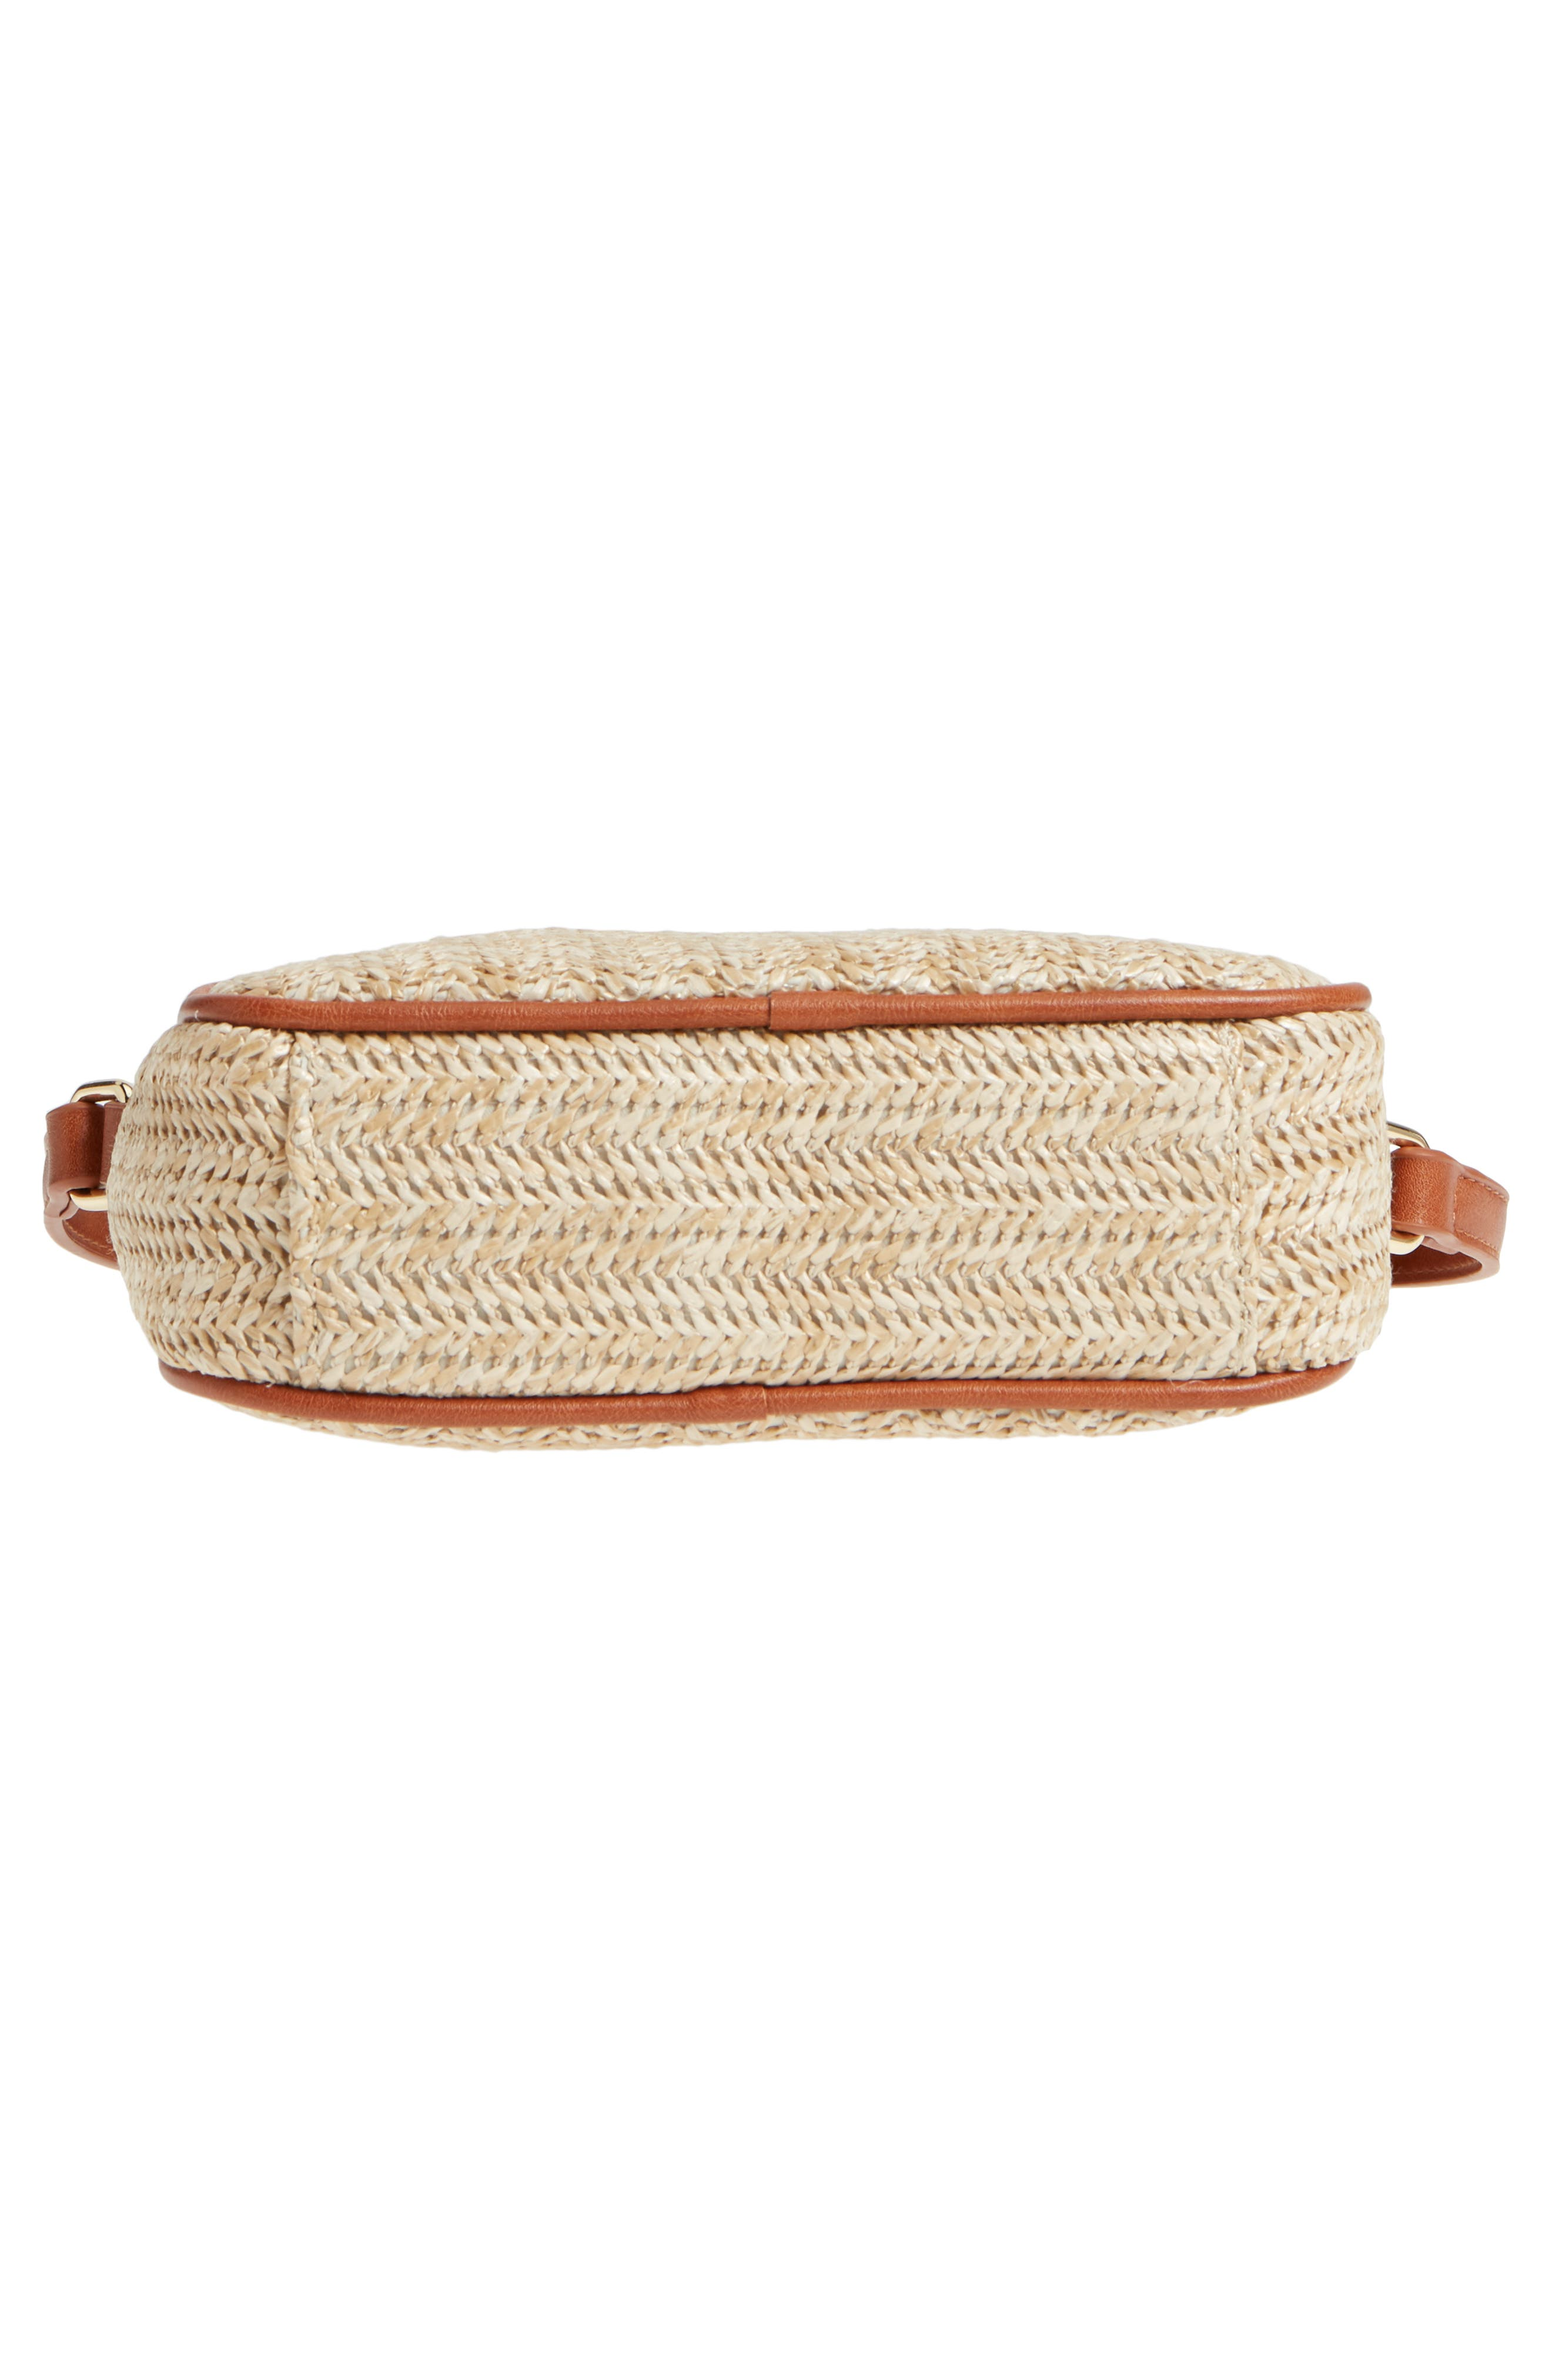 Pipper Faux Leather Camera Bag,                             Alternate thumbnail 6, color,                             Natural